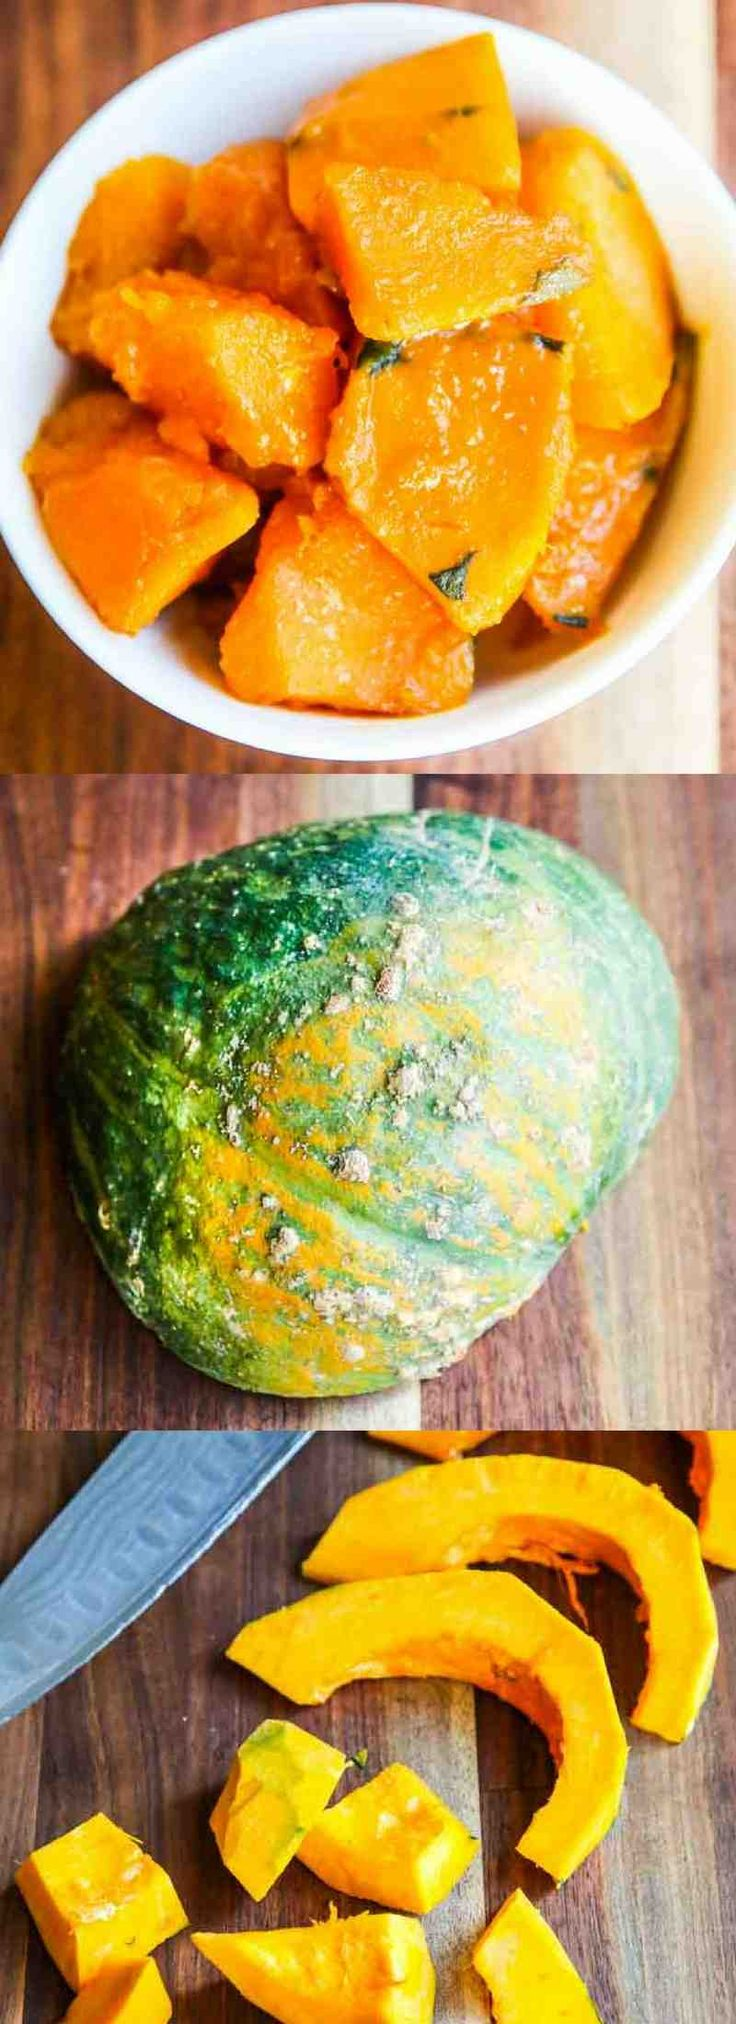 Japanese Braised Kabocha Squash - this simple braised squash dish is a wonderful side dish and reheats well.